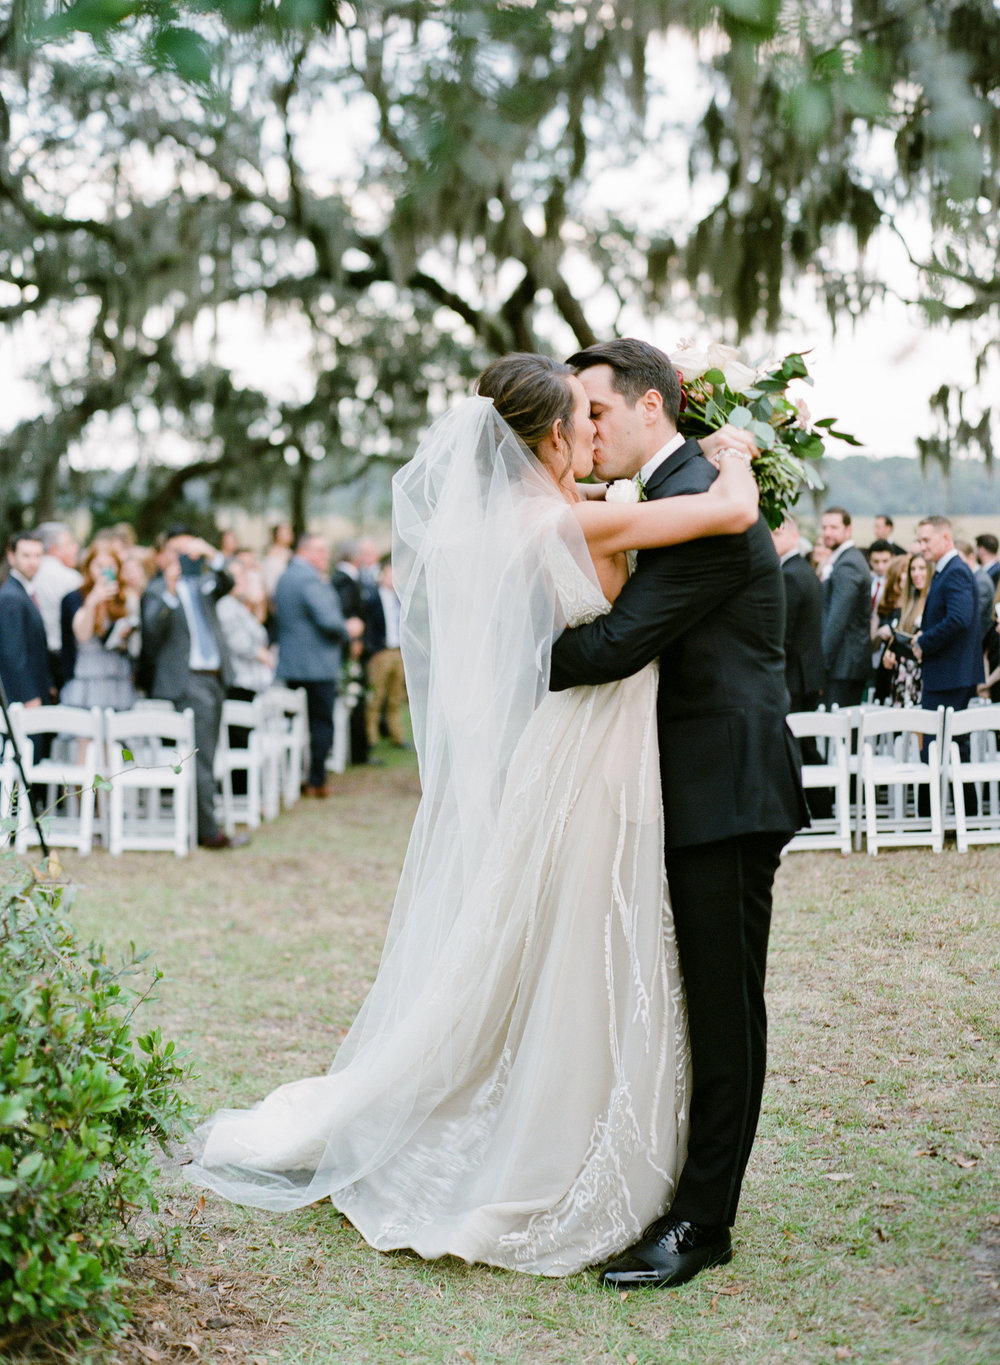 ivory-and-beau-bridal-boutique-savannah-wedding-planner-the-happy-bloom-photography-bethesda-academy-wedding-morris-center-wedding-savannah-wedding-27.jpg